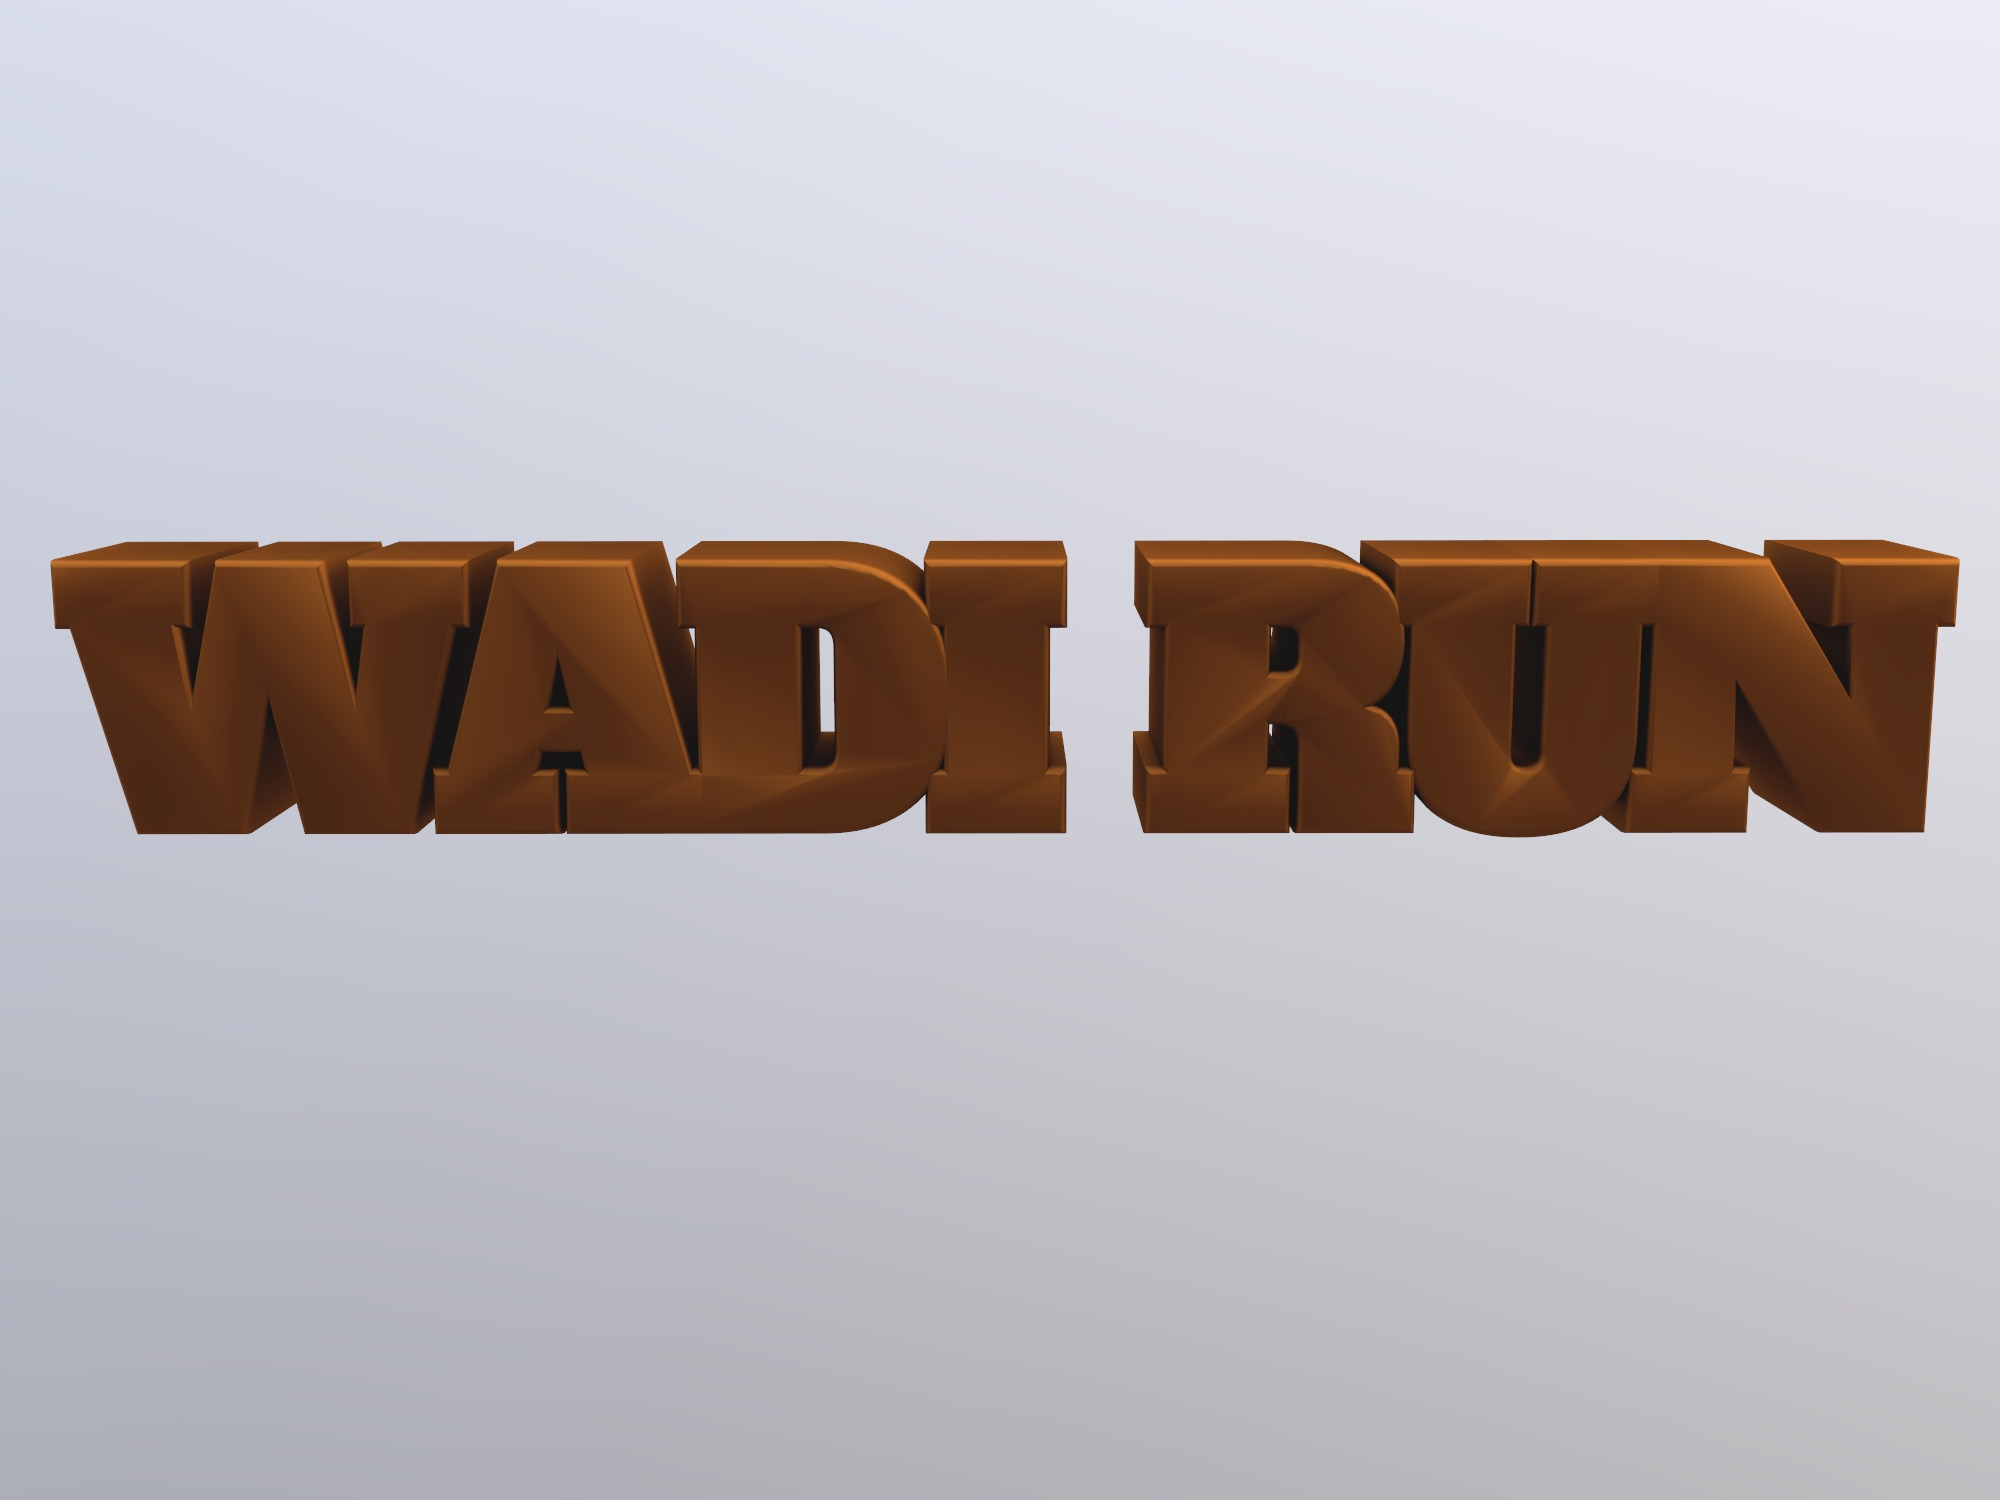 wadi run (copy) - 3D design by Rey ßh on Dec 15, 2018